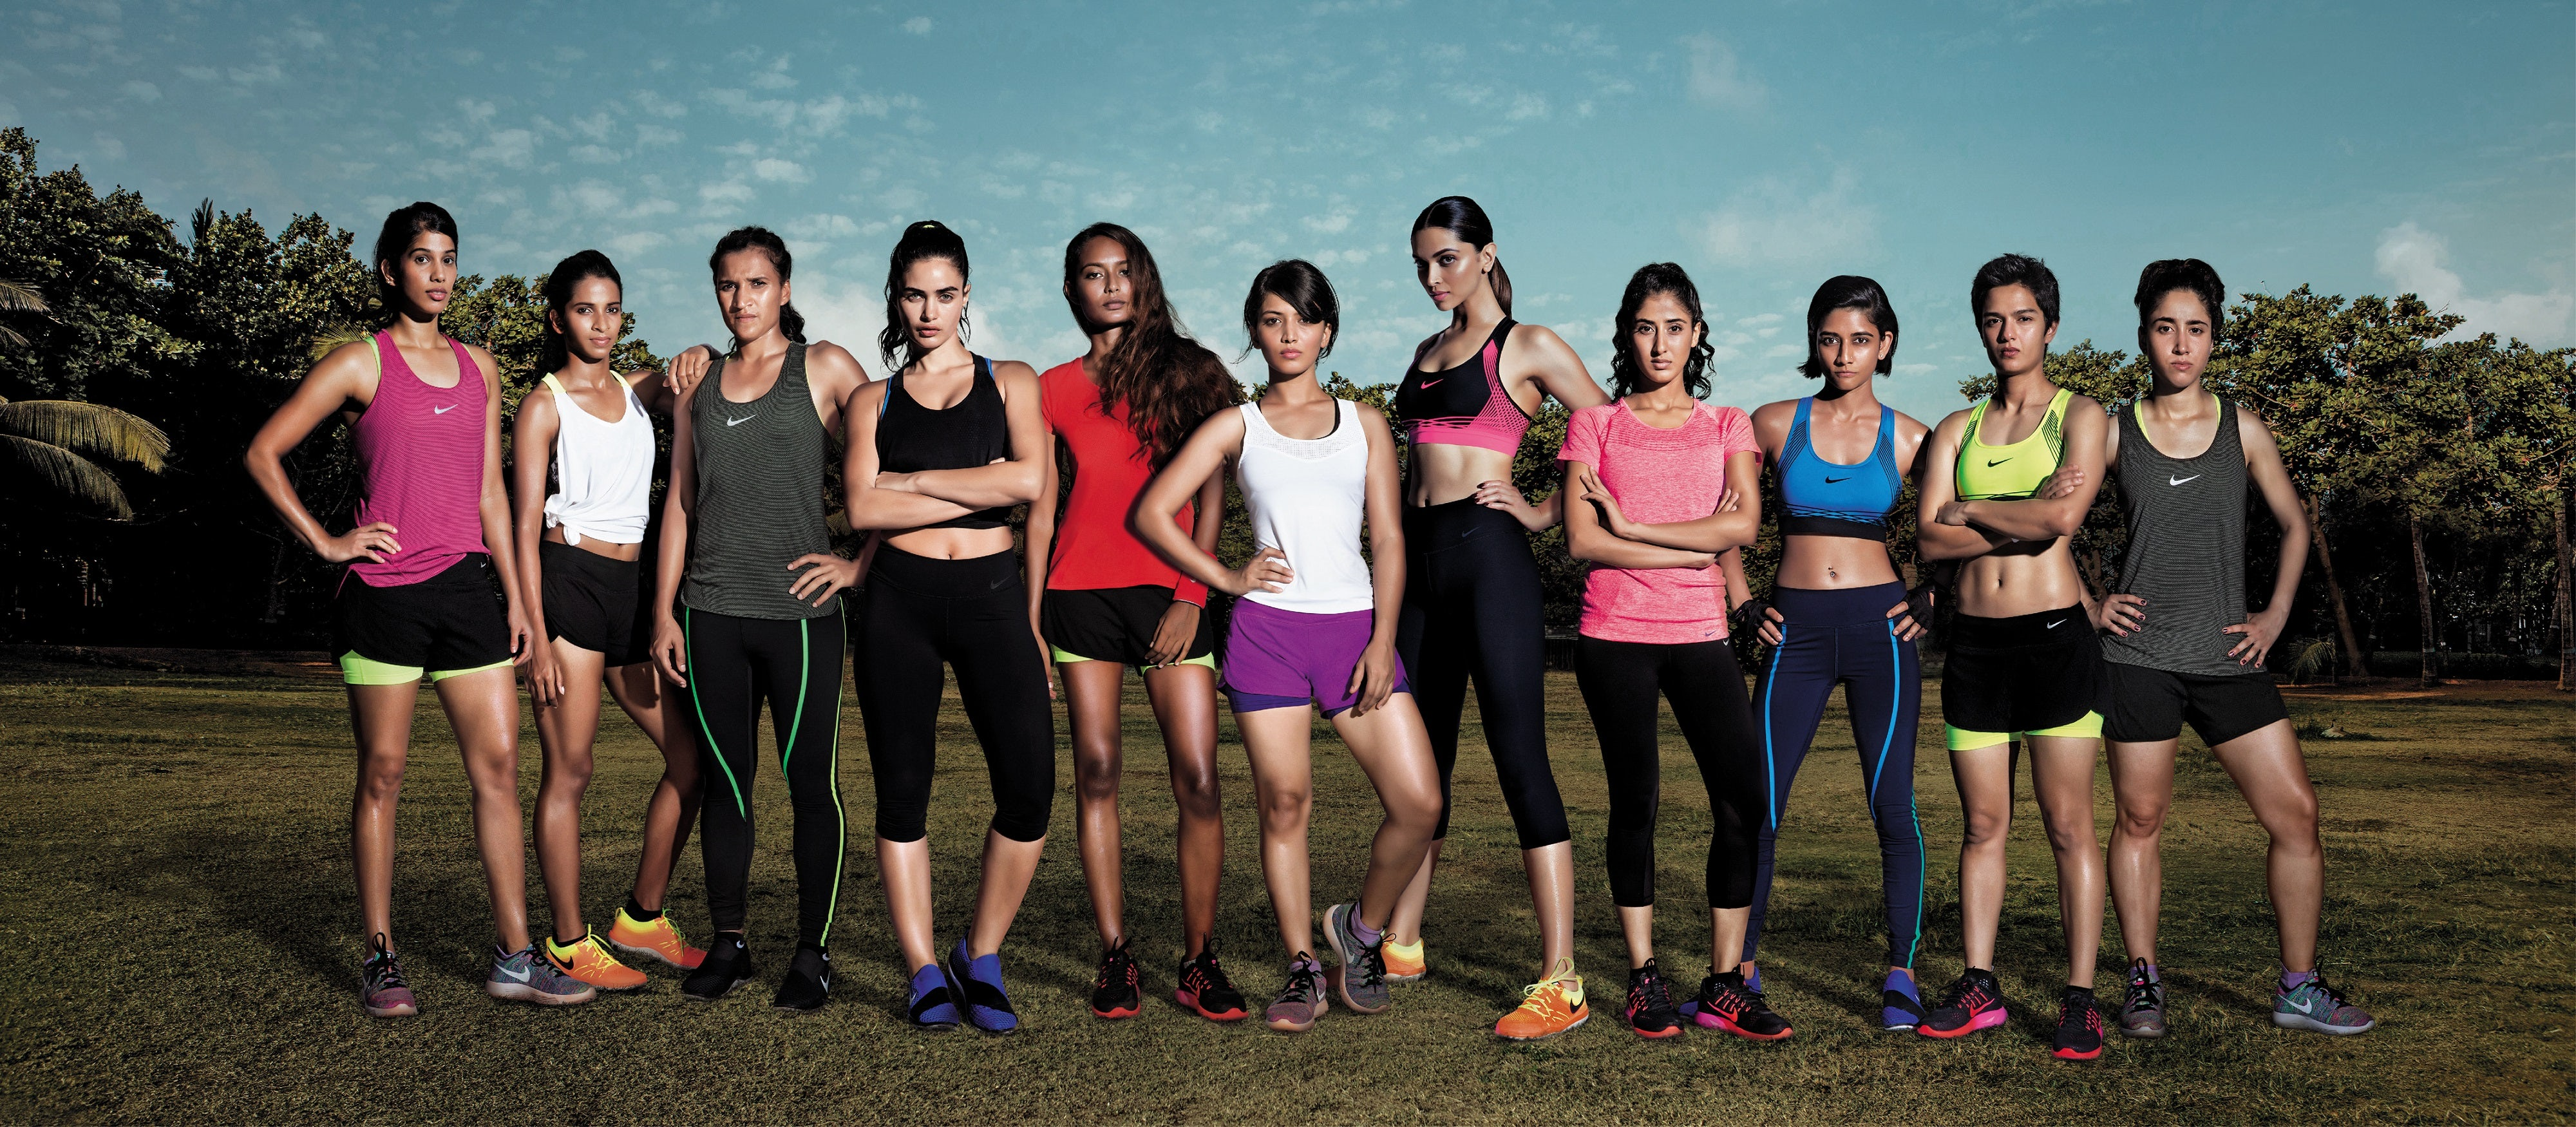 Nike India Da Da Ding campaign | Source: Courtesy